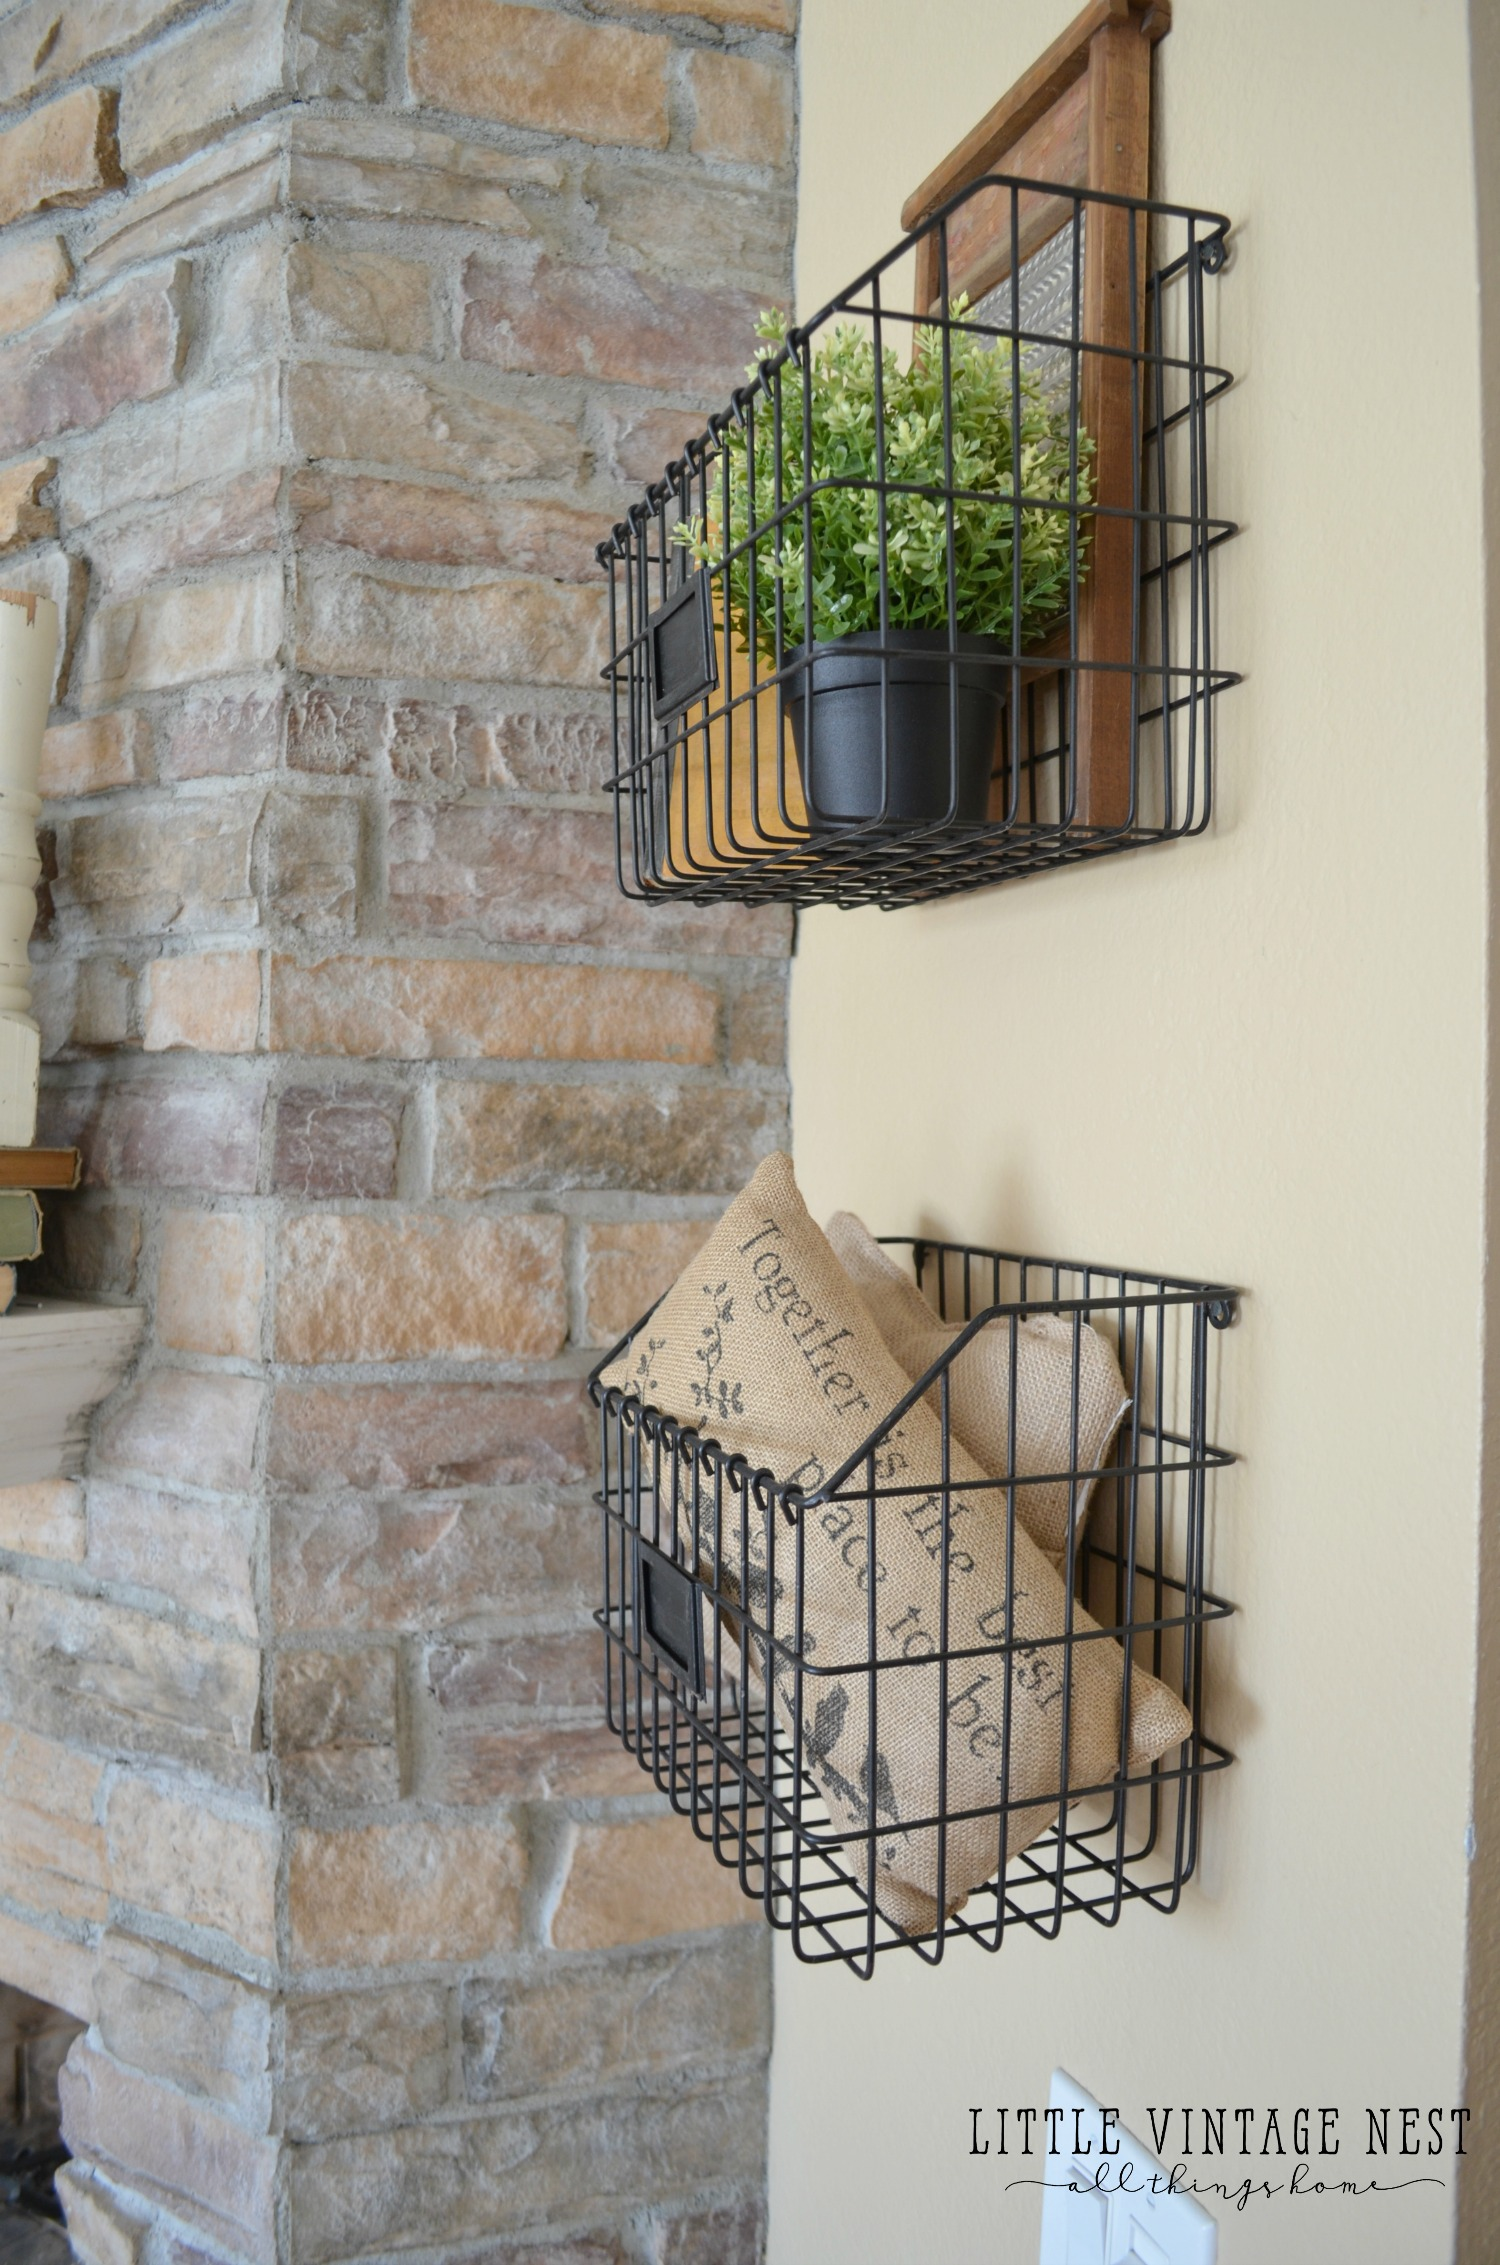 10 Rustic Ways to Decorate With Vintage Wire Baskets   Vintage Wire Baskets, Vintage Wire Basket Decor, Farmhouse Decor, Farmhouse Home Decor, Home Decor, DIY Home Decor, Home Decor Ideas